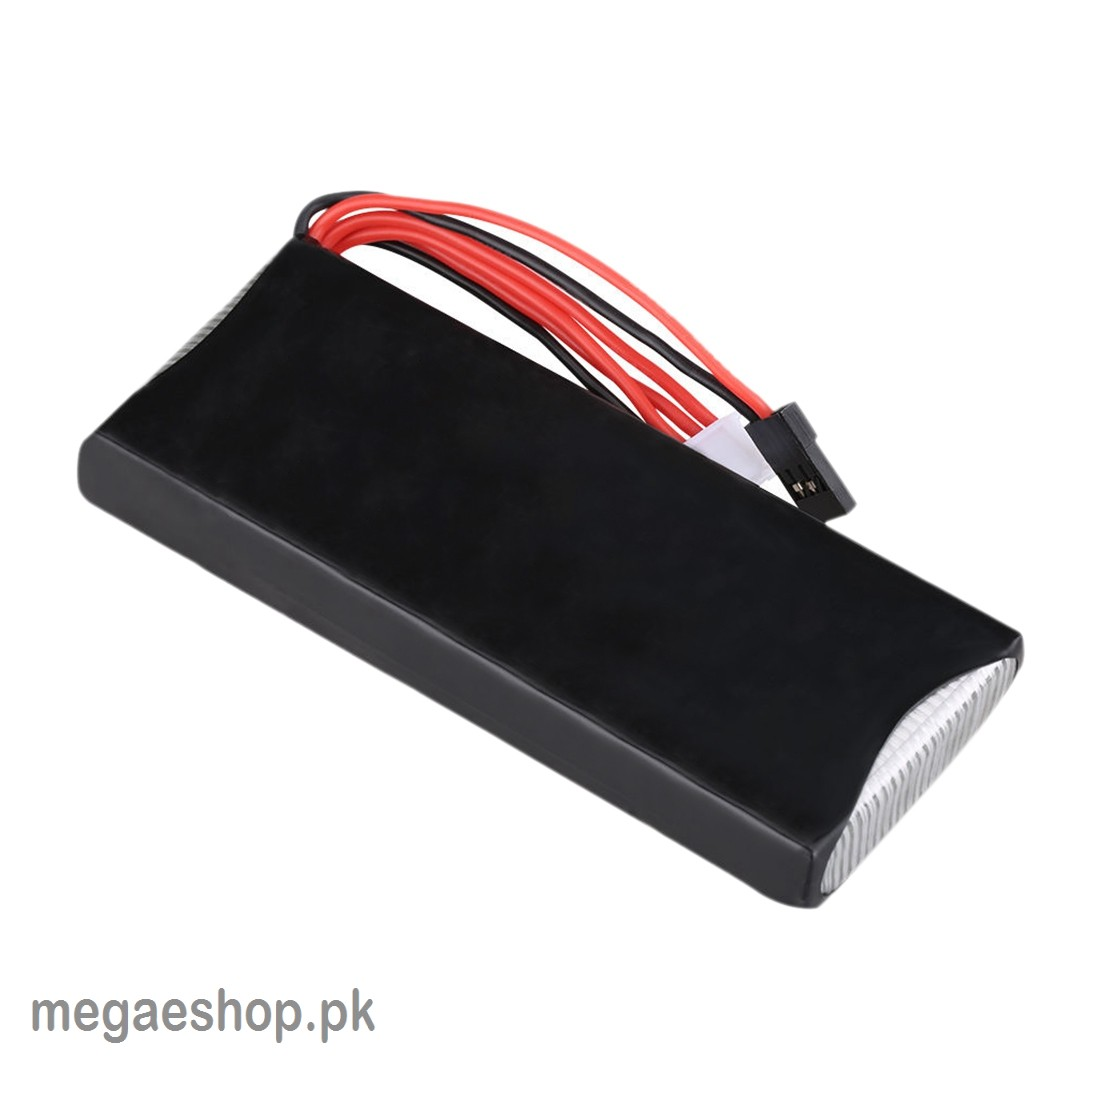 3S 11.1V 2200mAh 8C Li-Po Li-polymer battery for RC quadcopter drone